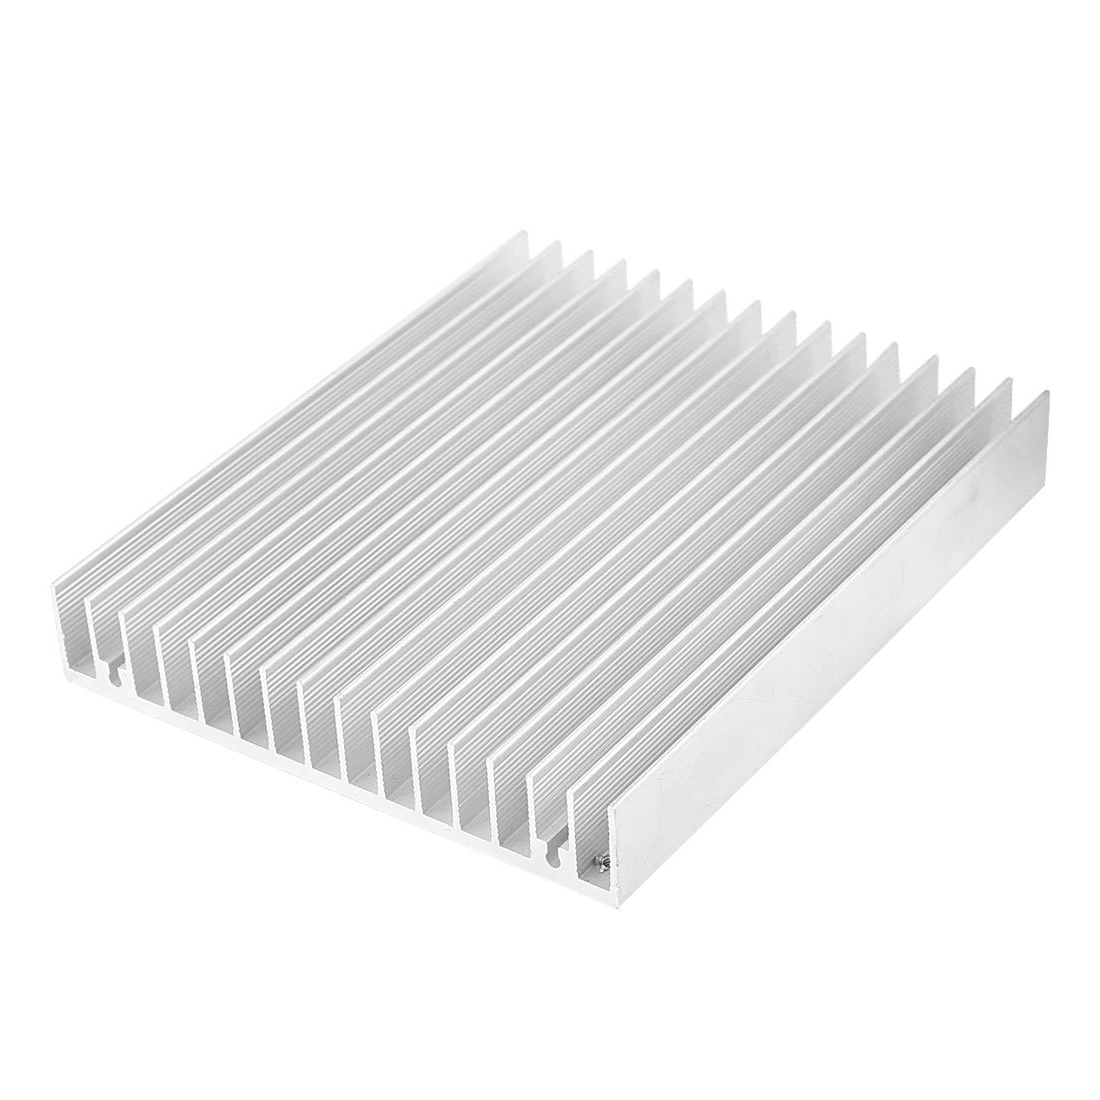 PROMOTION! Silver Tone Aluminium Heat Diffuse Heat Sink Cooling Fin 120x100x18mm 75 29 3 15 2mm pure copper radiator copper cooling fins copper fin can be diy longer heat sink radiactor fin coliing fin